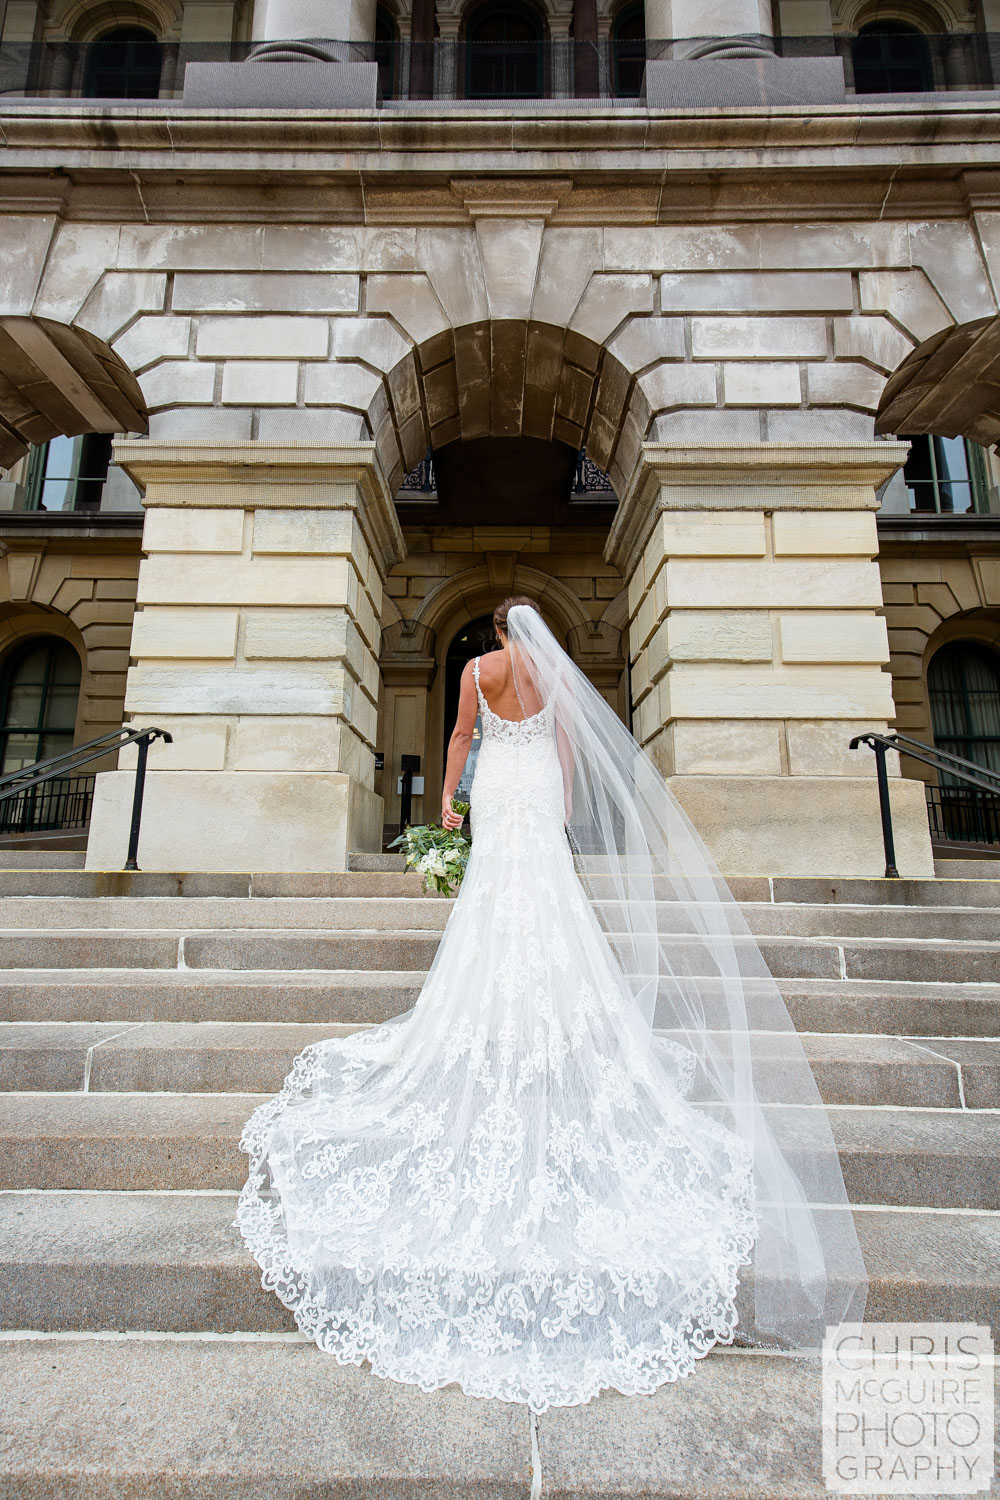 Bride in dress and veil at Illinois State Capitol in Springfield